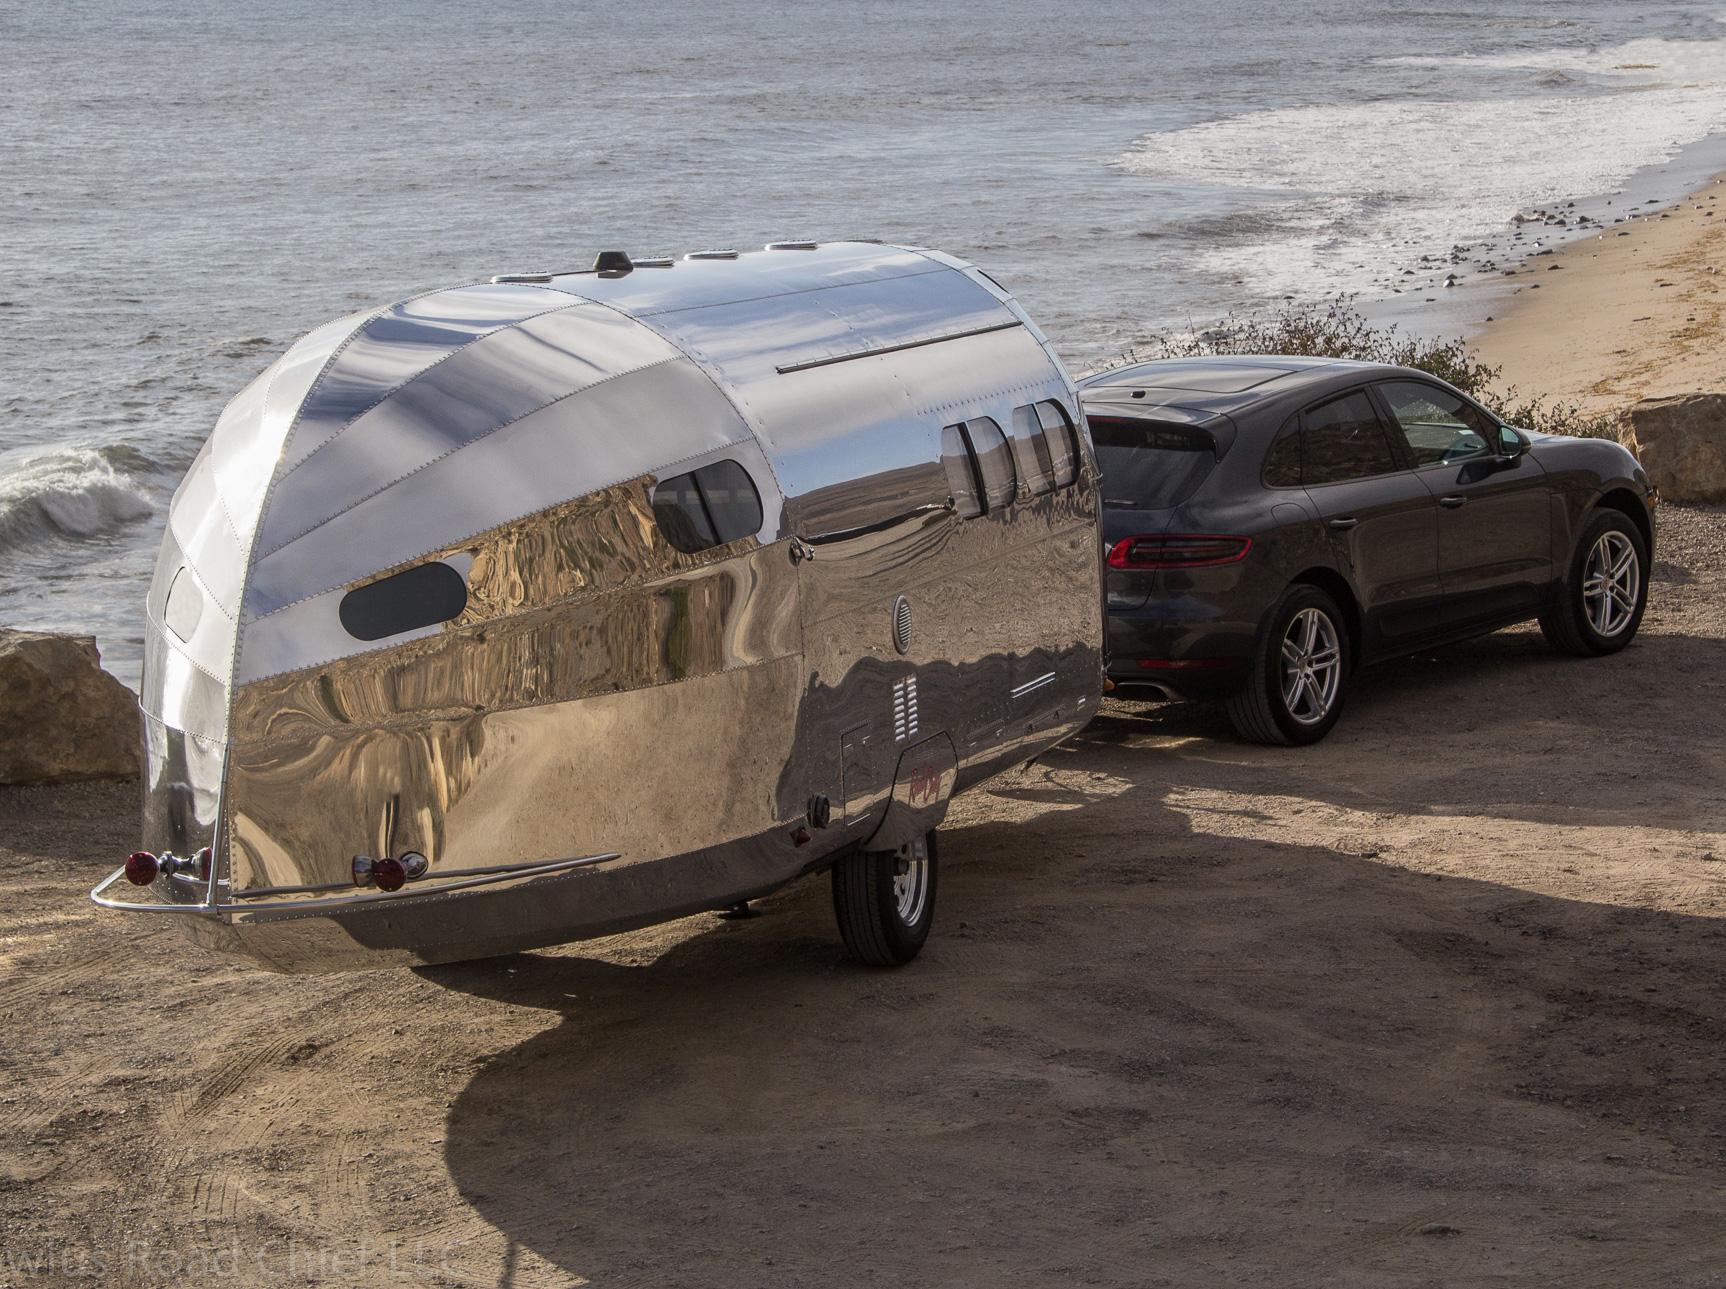 Bowlus Rolls Out the Ultimate Chrome-Dipped Glamping Trailer at werd.com